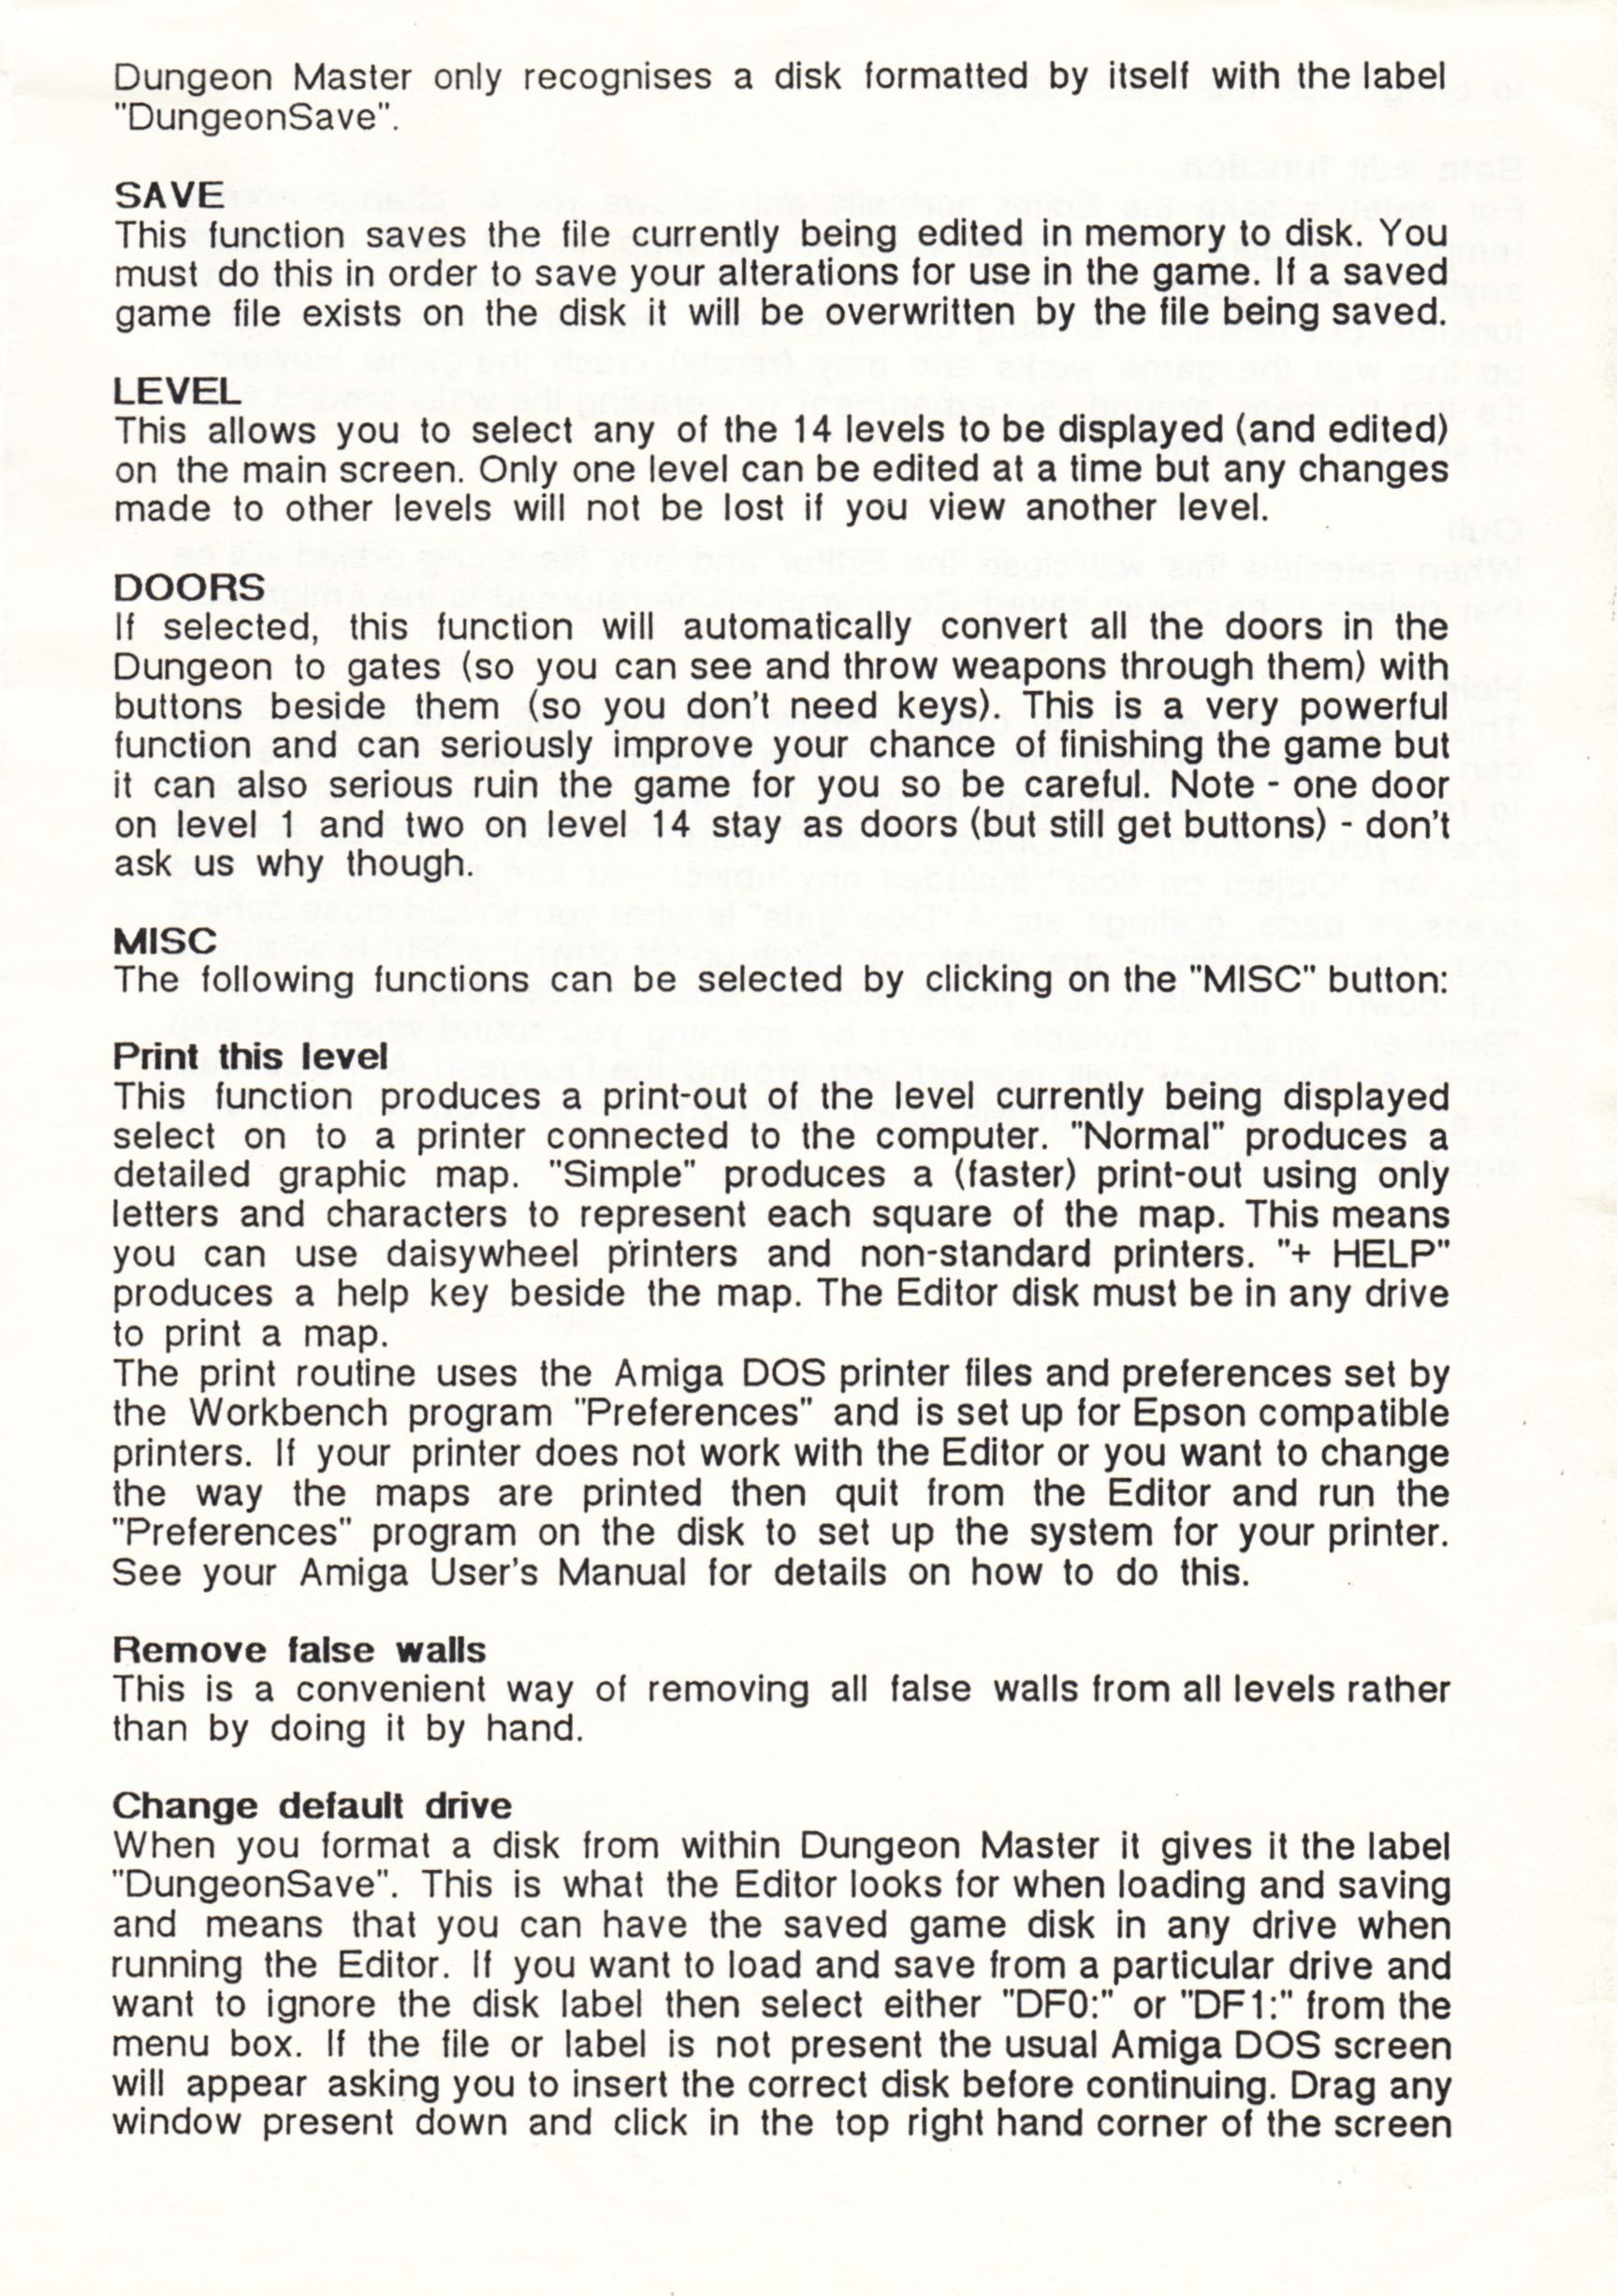 Tool - The Dungeon Master Editor - UK - Amiga - Amiga Manual - Page 003 - Scan